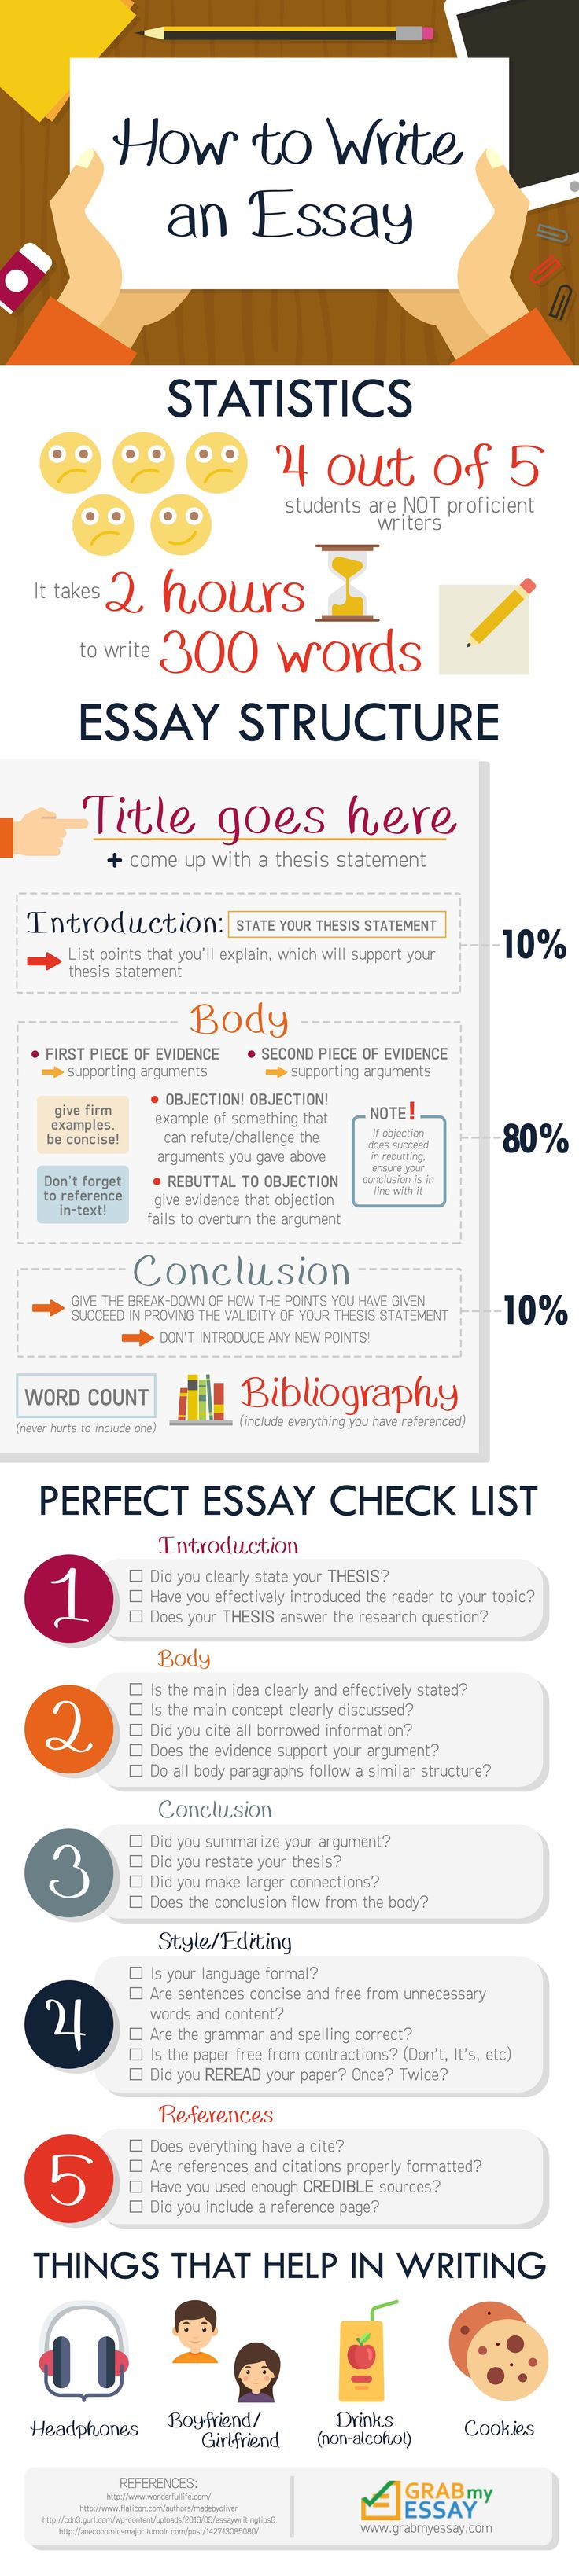 best images about infographics education how to write an essay infographic education essay